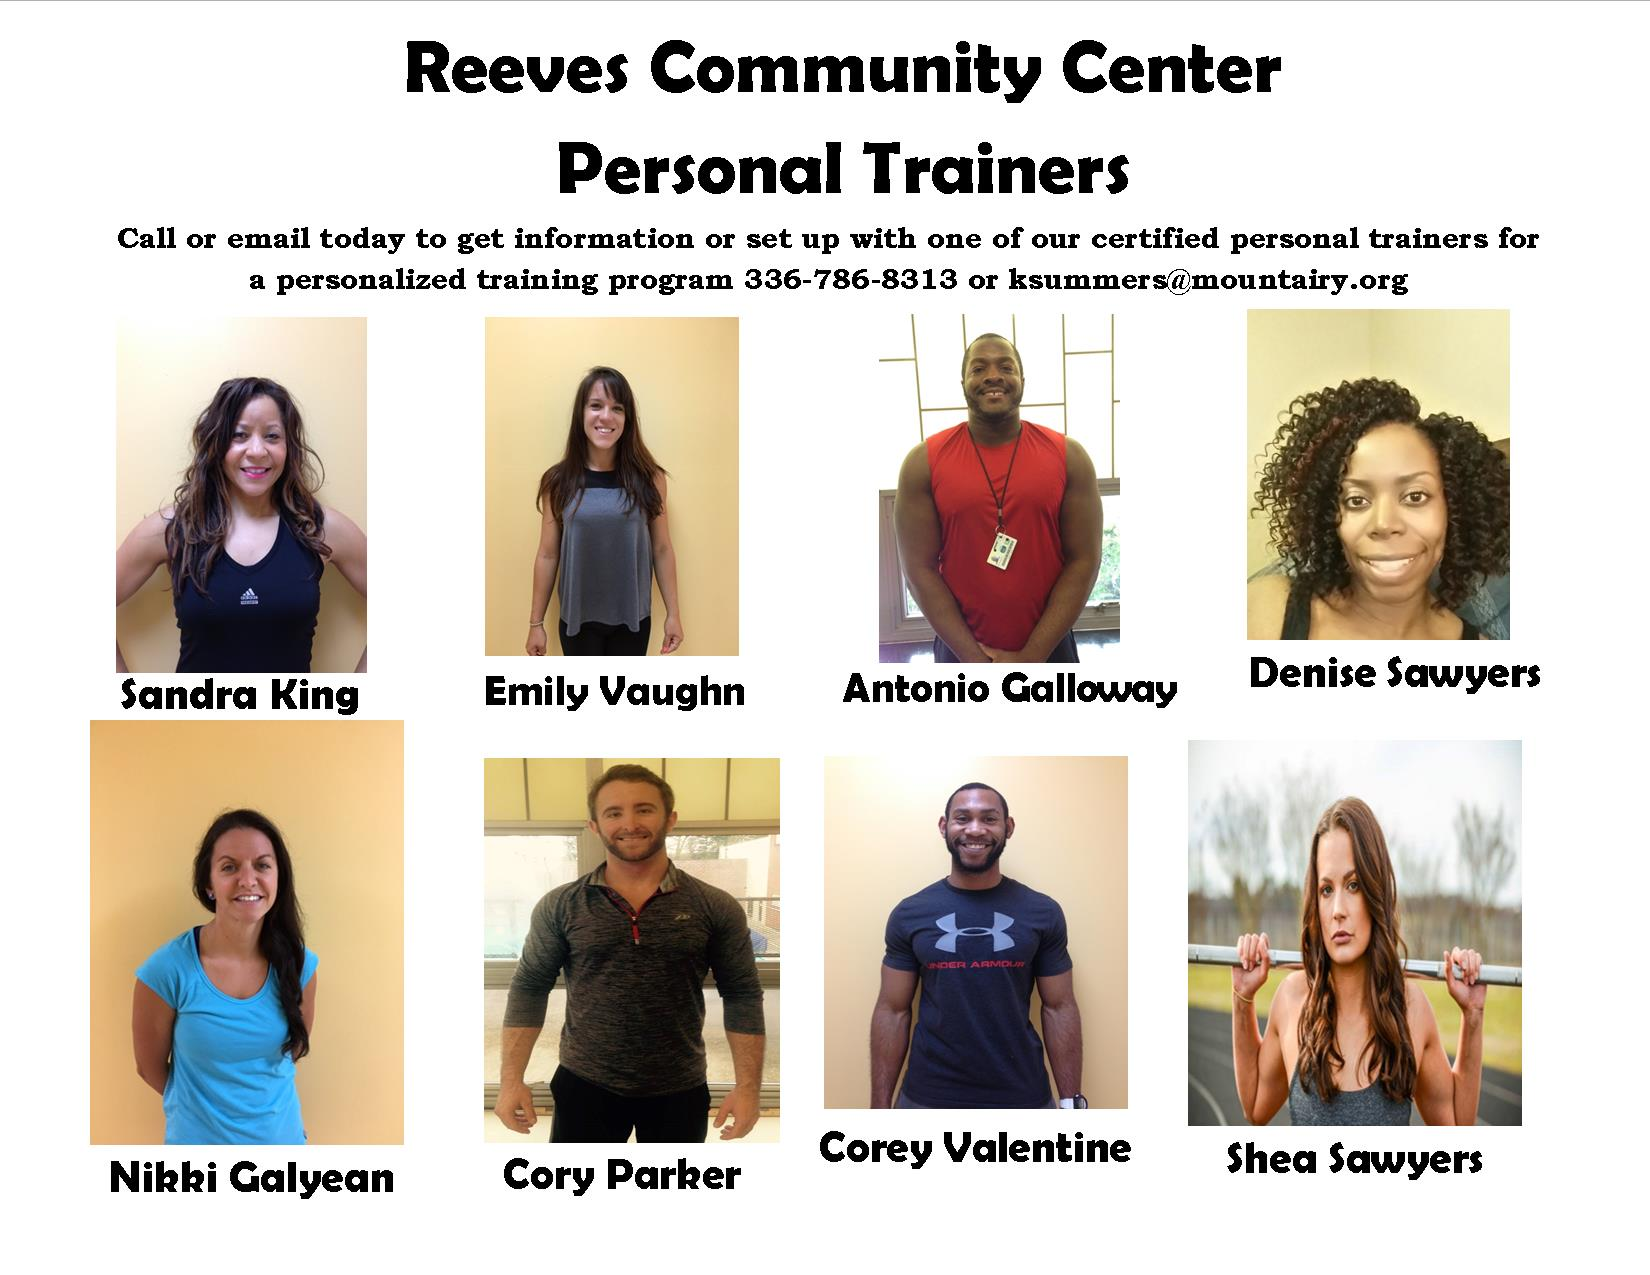 RCCPersonalTrainers2017